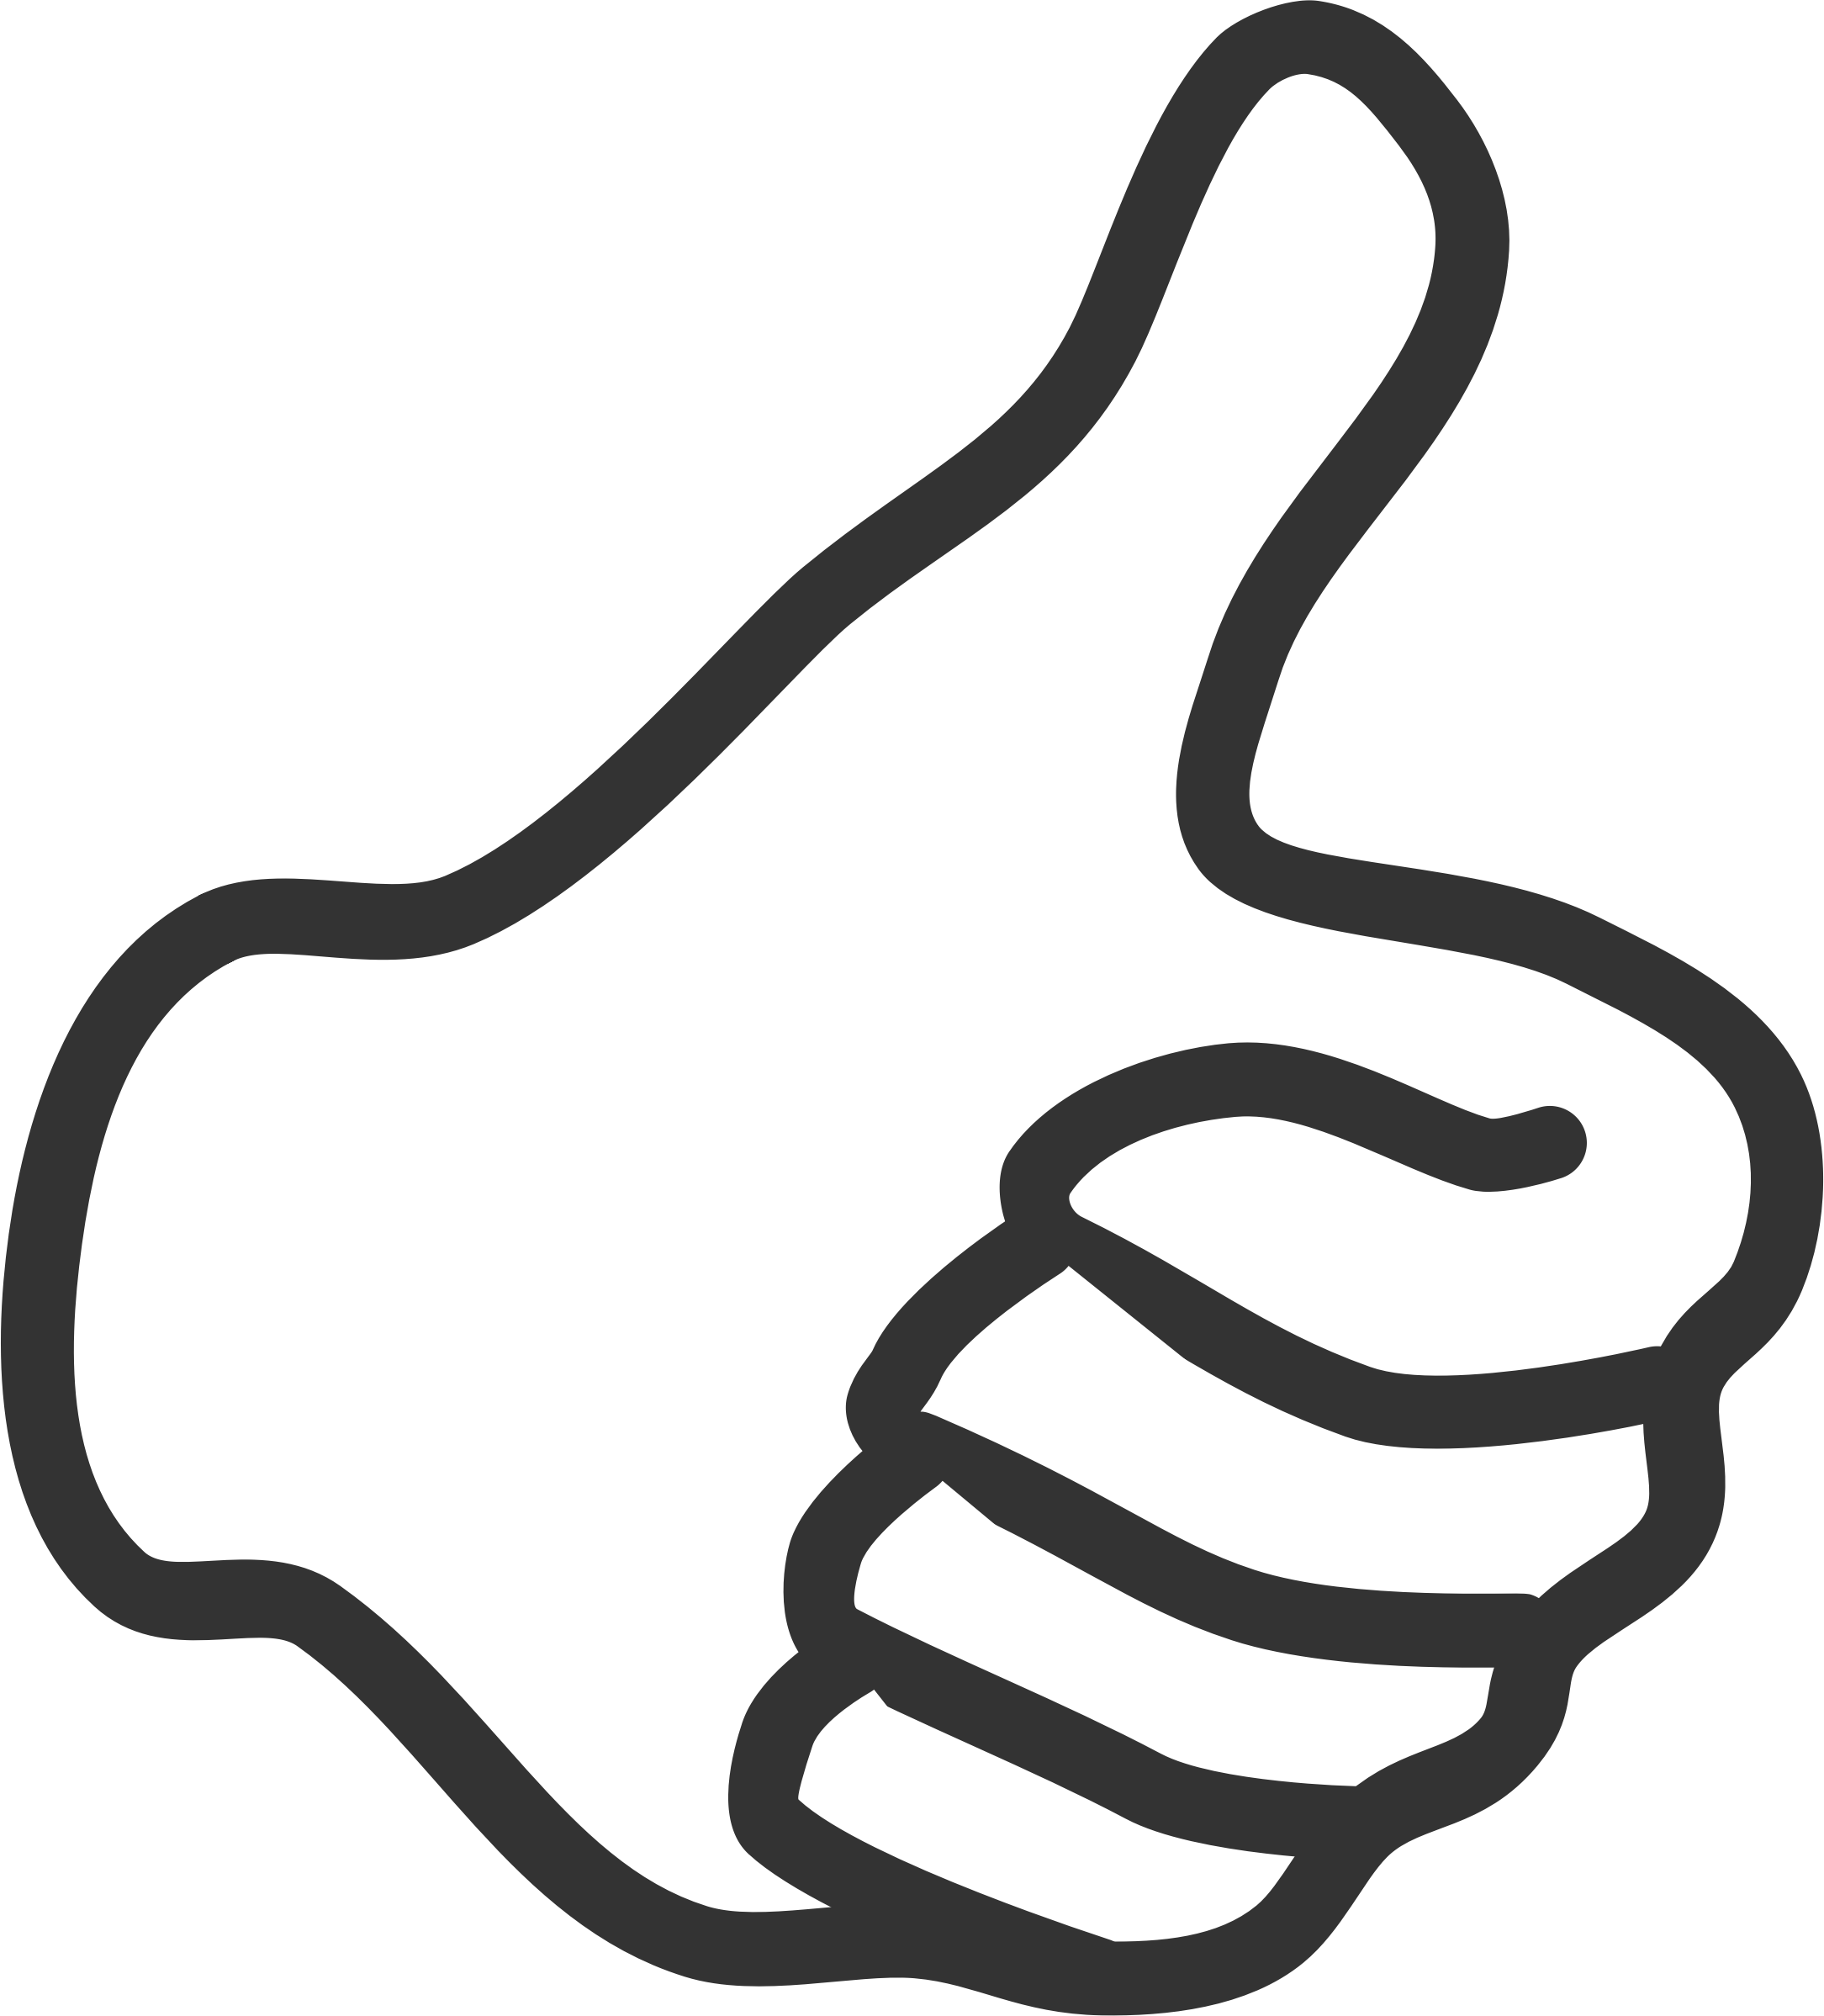 Free animal clipart thumbs up and down royalty free Thumb Clip Art & Thumb Clip Art Clip Art Images - ClipartALL.com royalty free